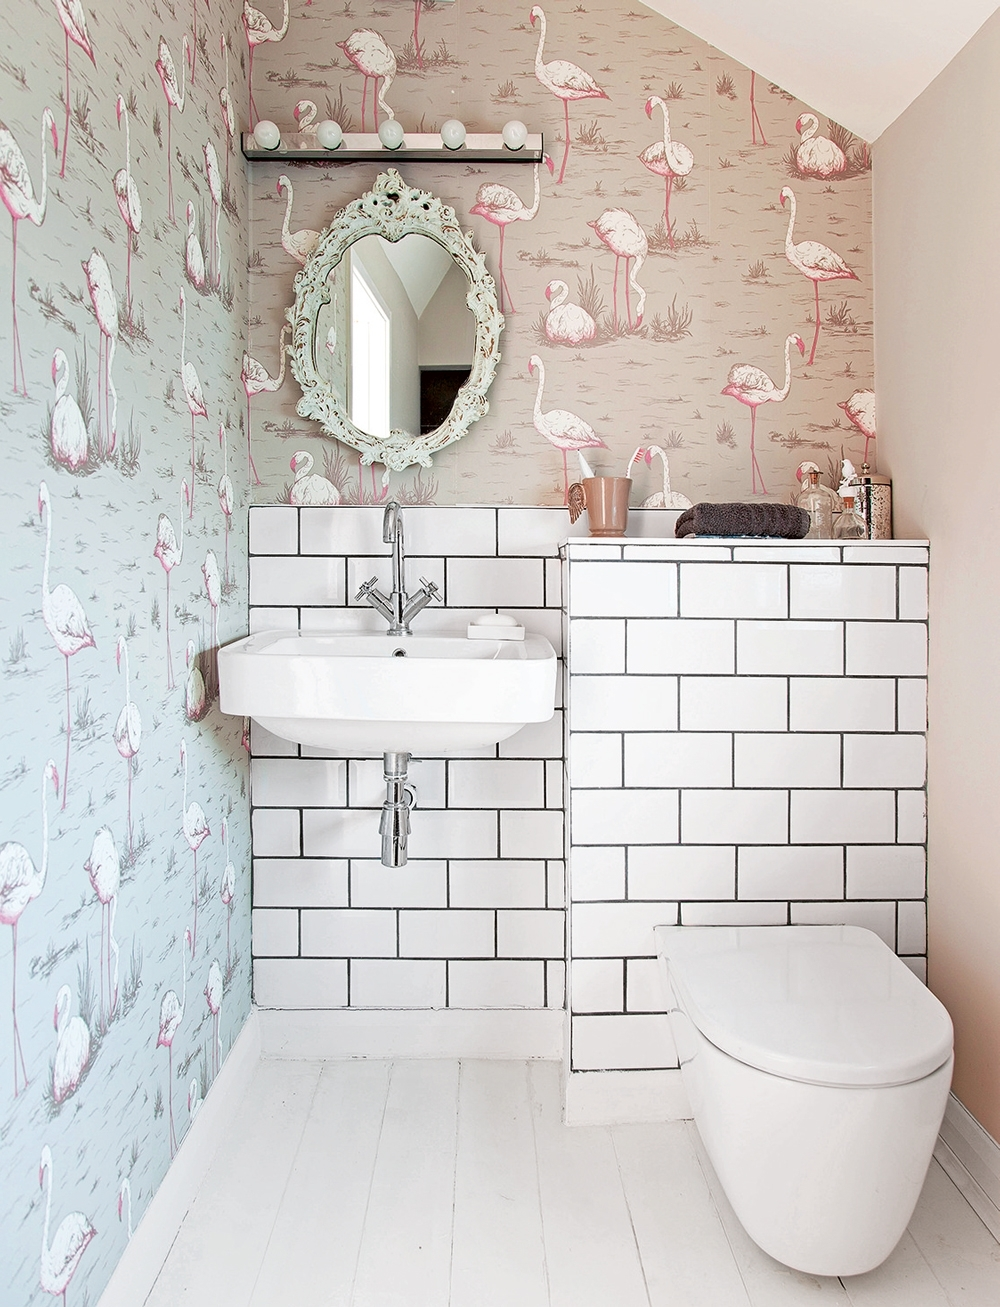 Cloakroom Ideas For Small Spaces – Downstairs Toilet Ideas Downstairs Bathroom Wallpaper